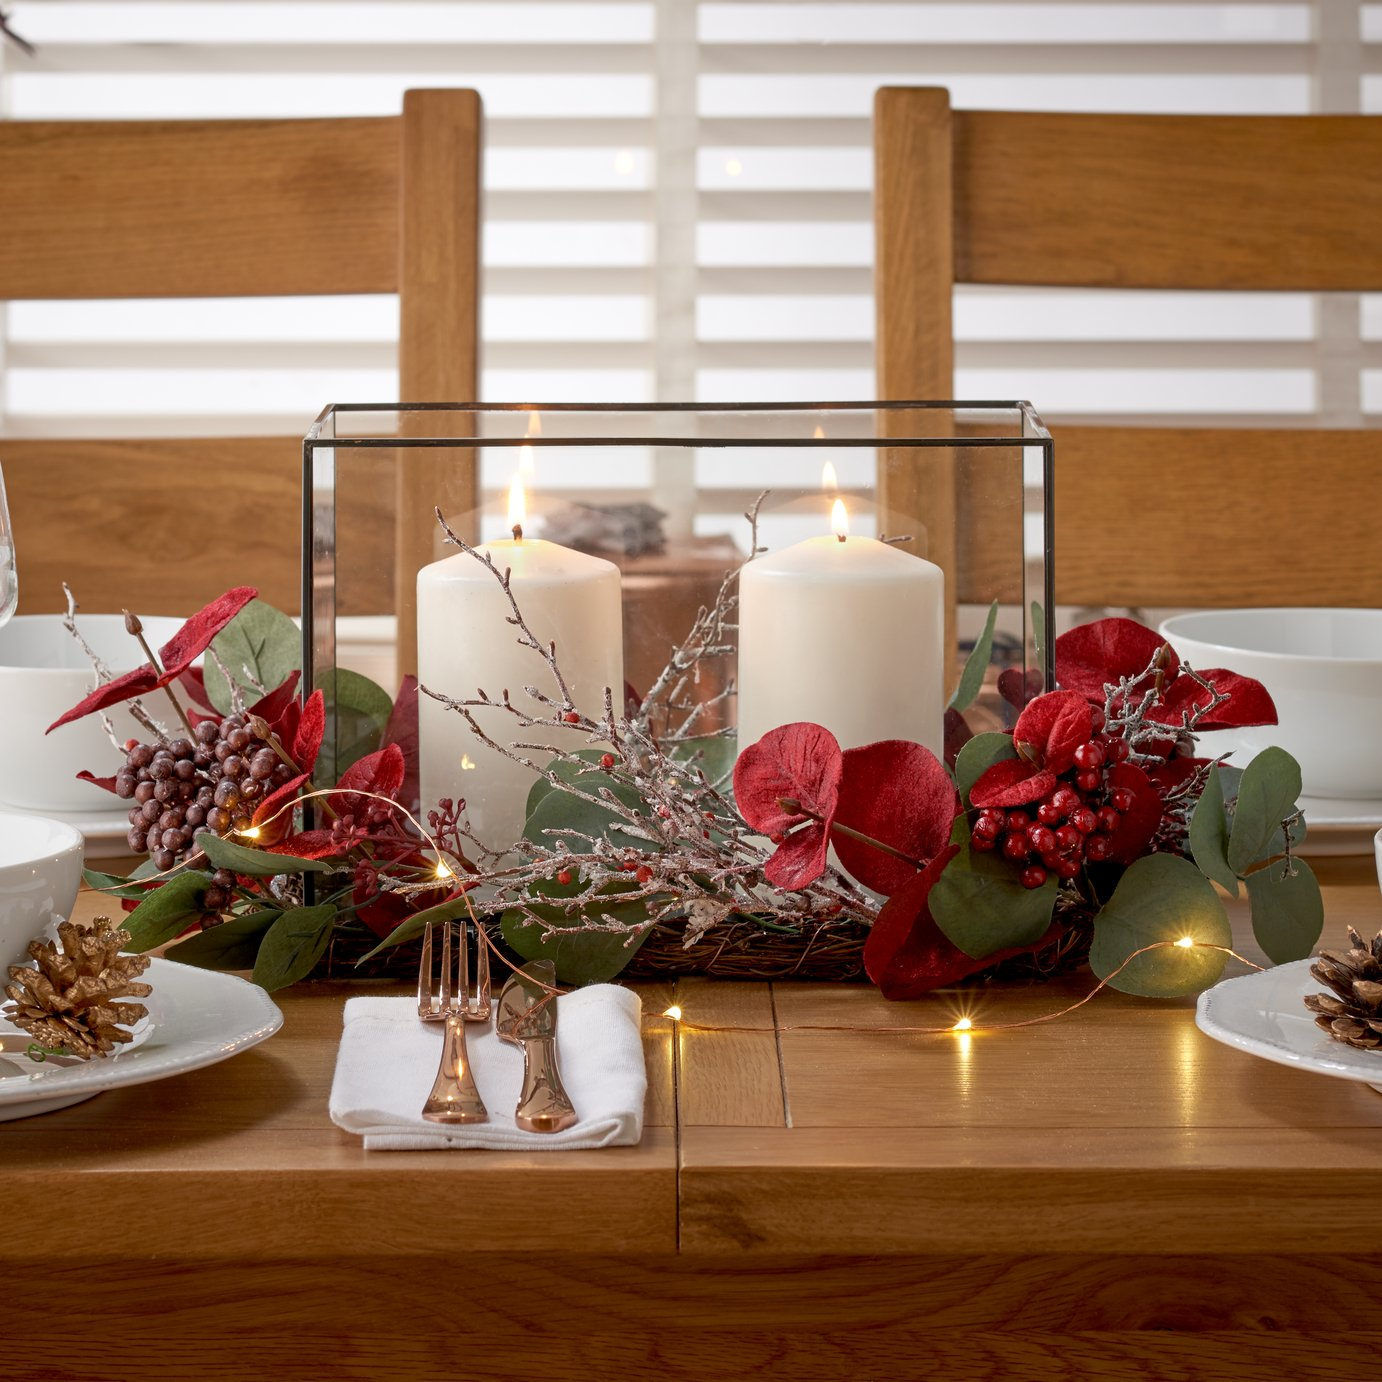 Christmas trees lights and decorations | Page 1 | Argos ...